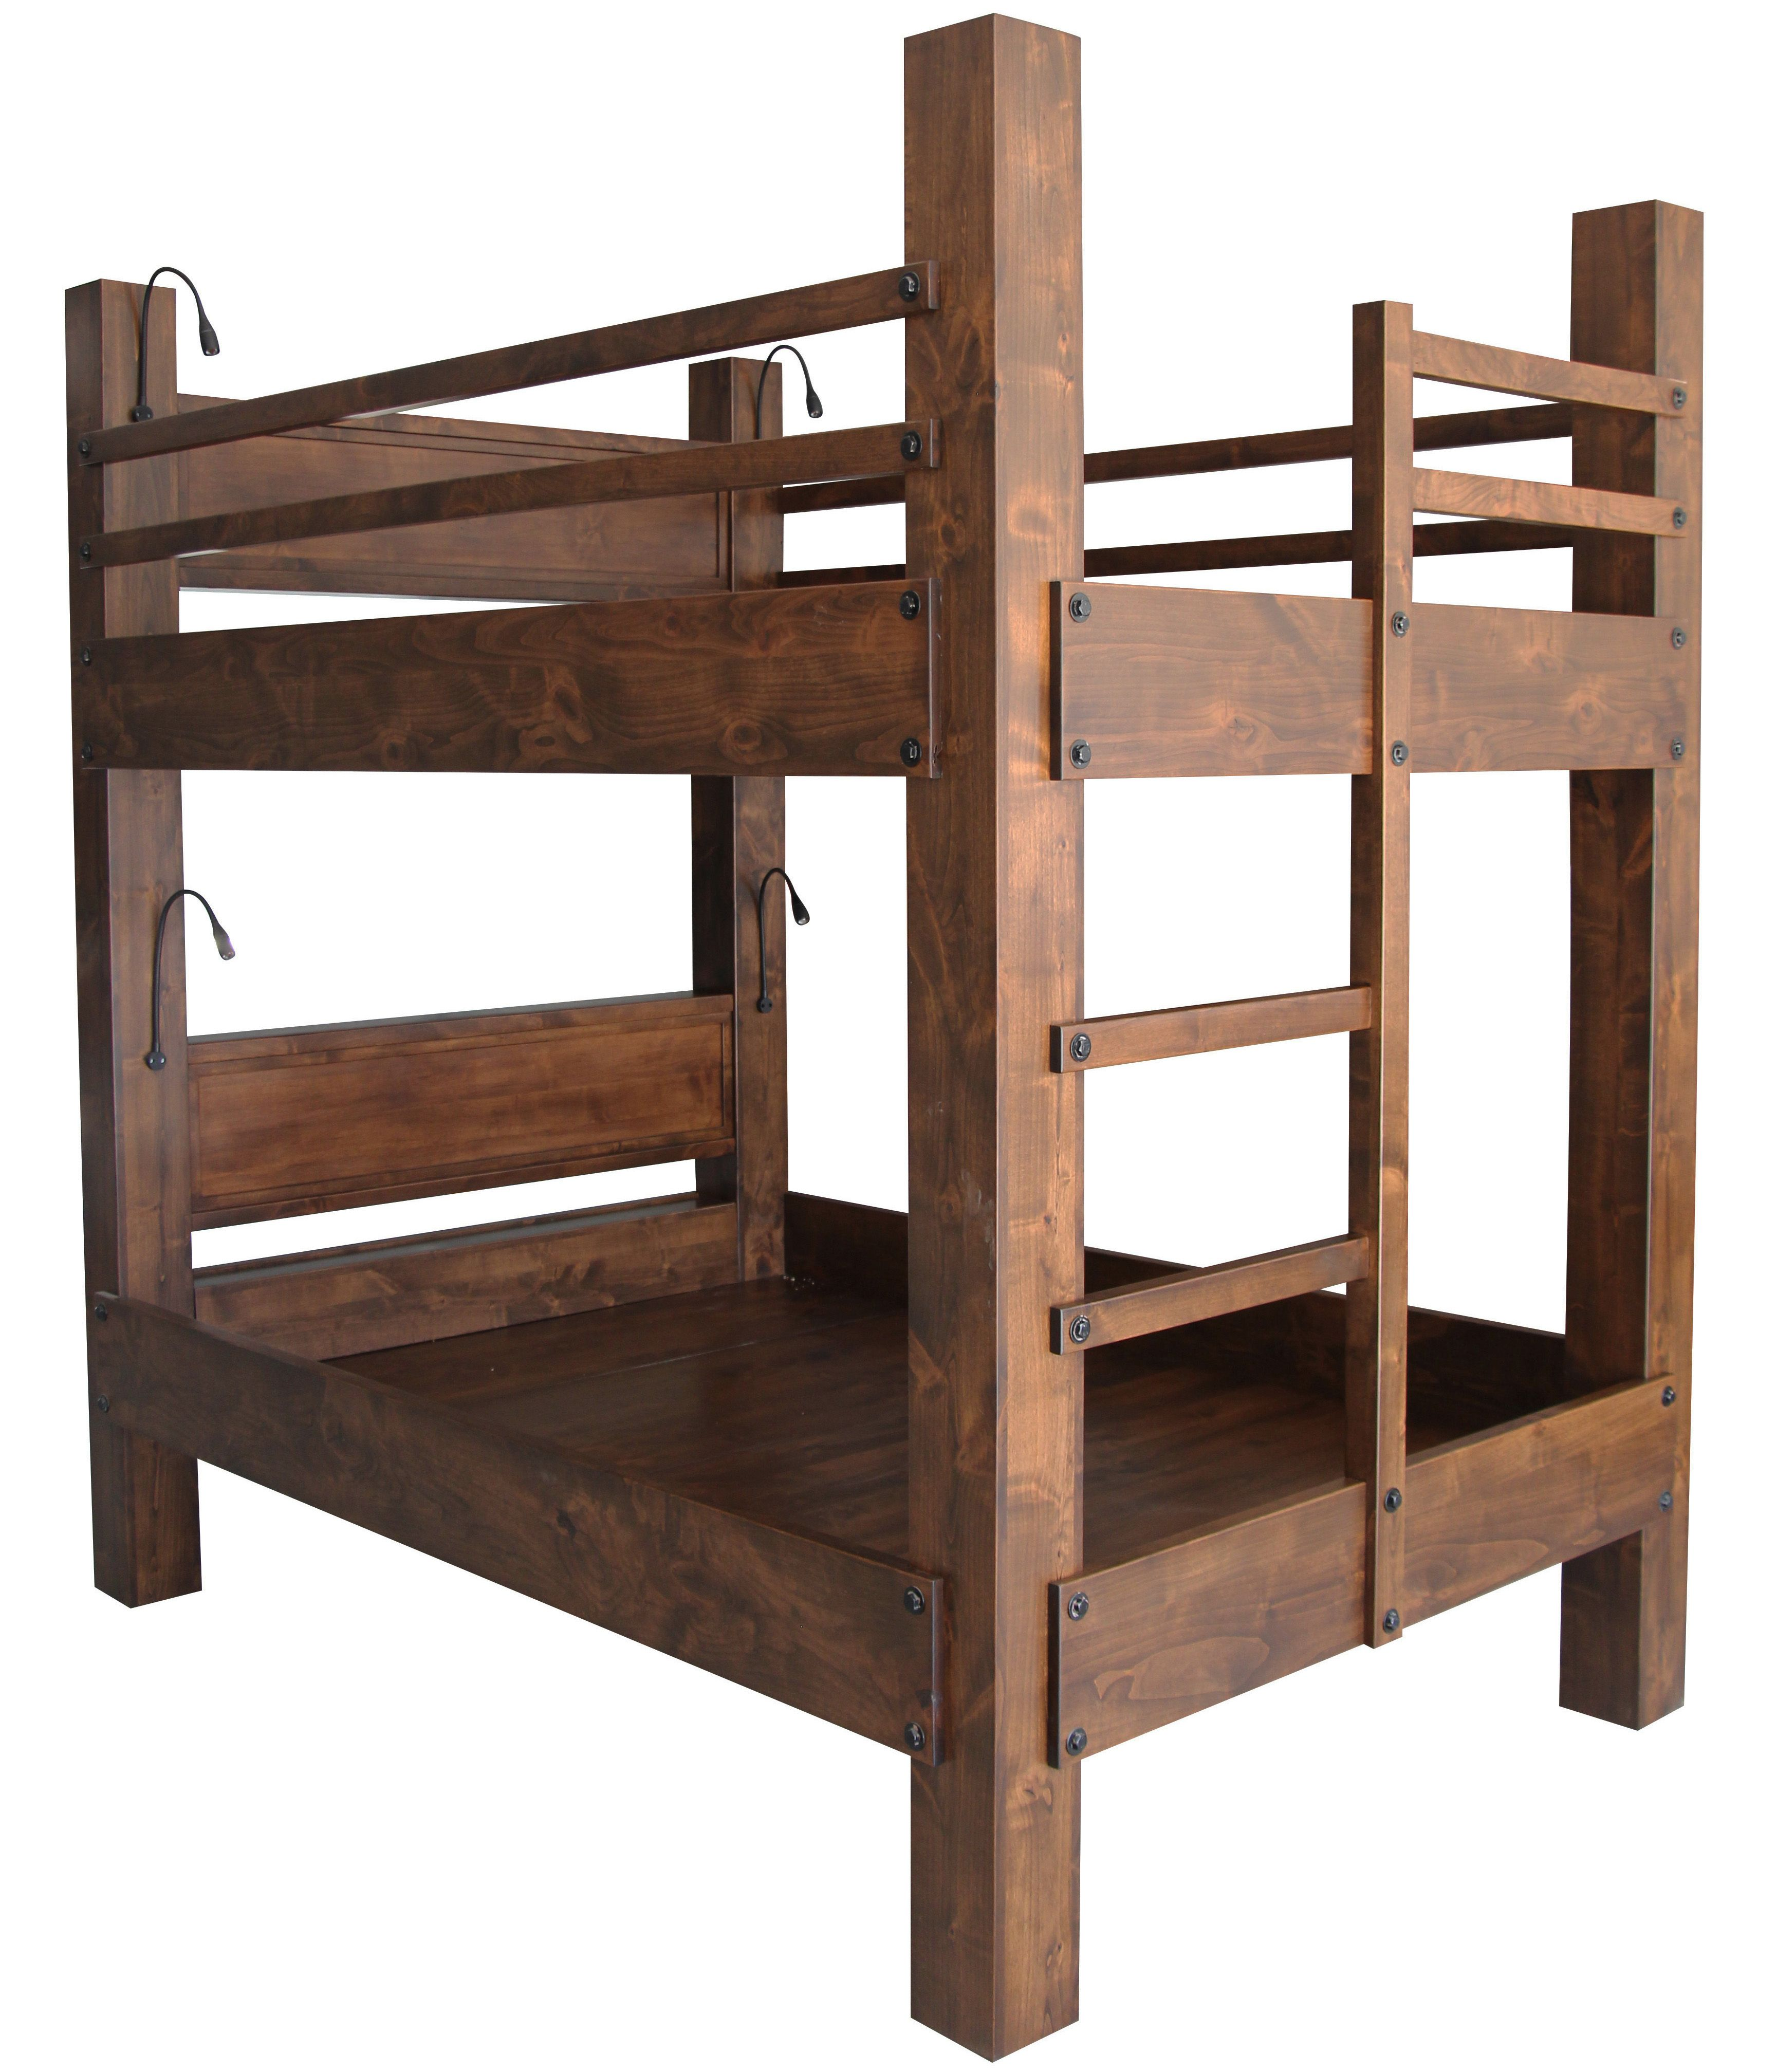 Buy a Custom Made Queen Over Queen Bunk Bed, made to order ...